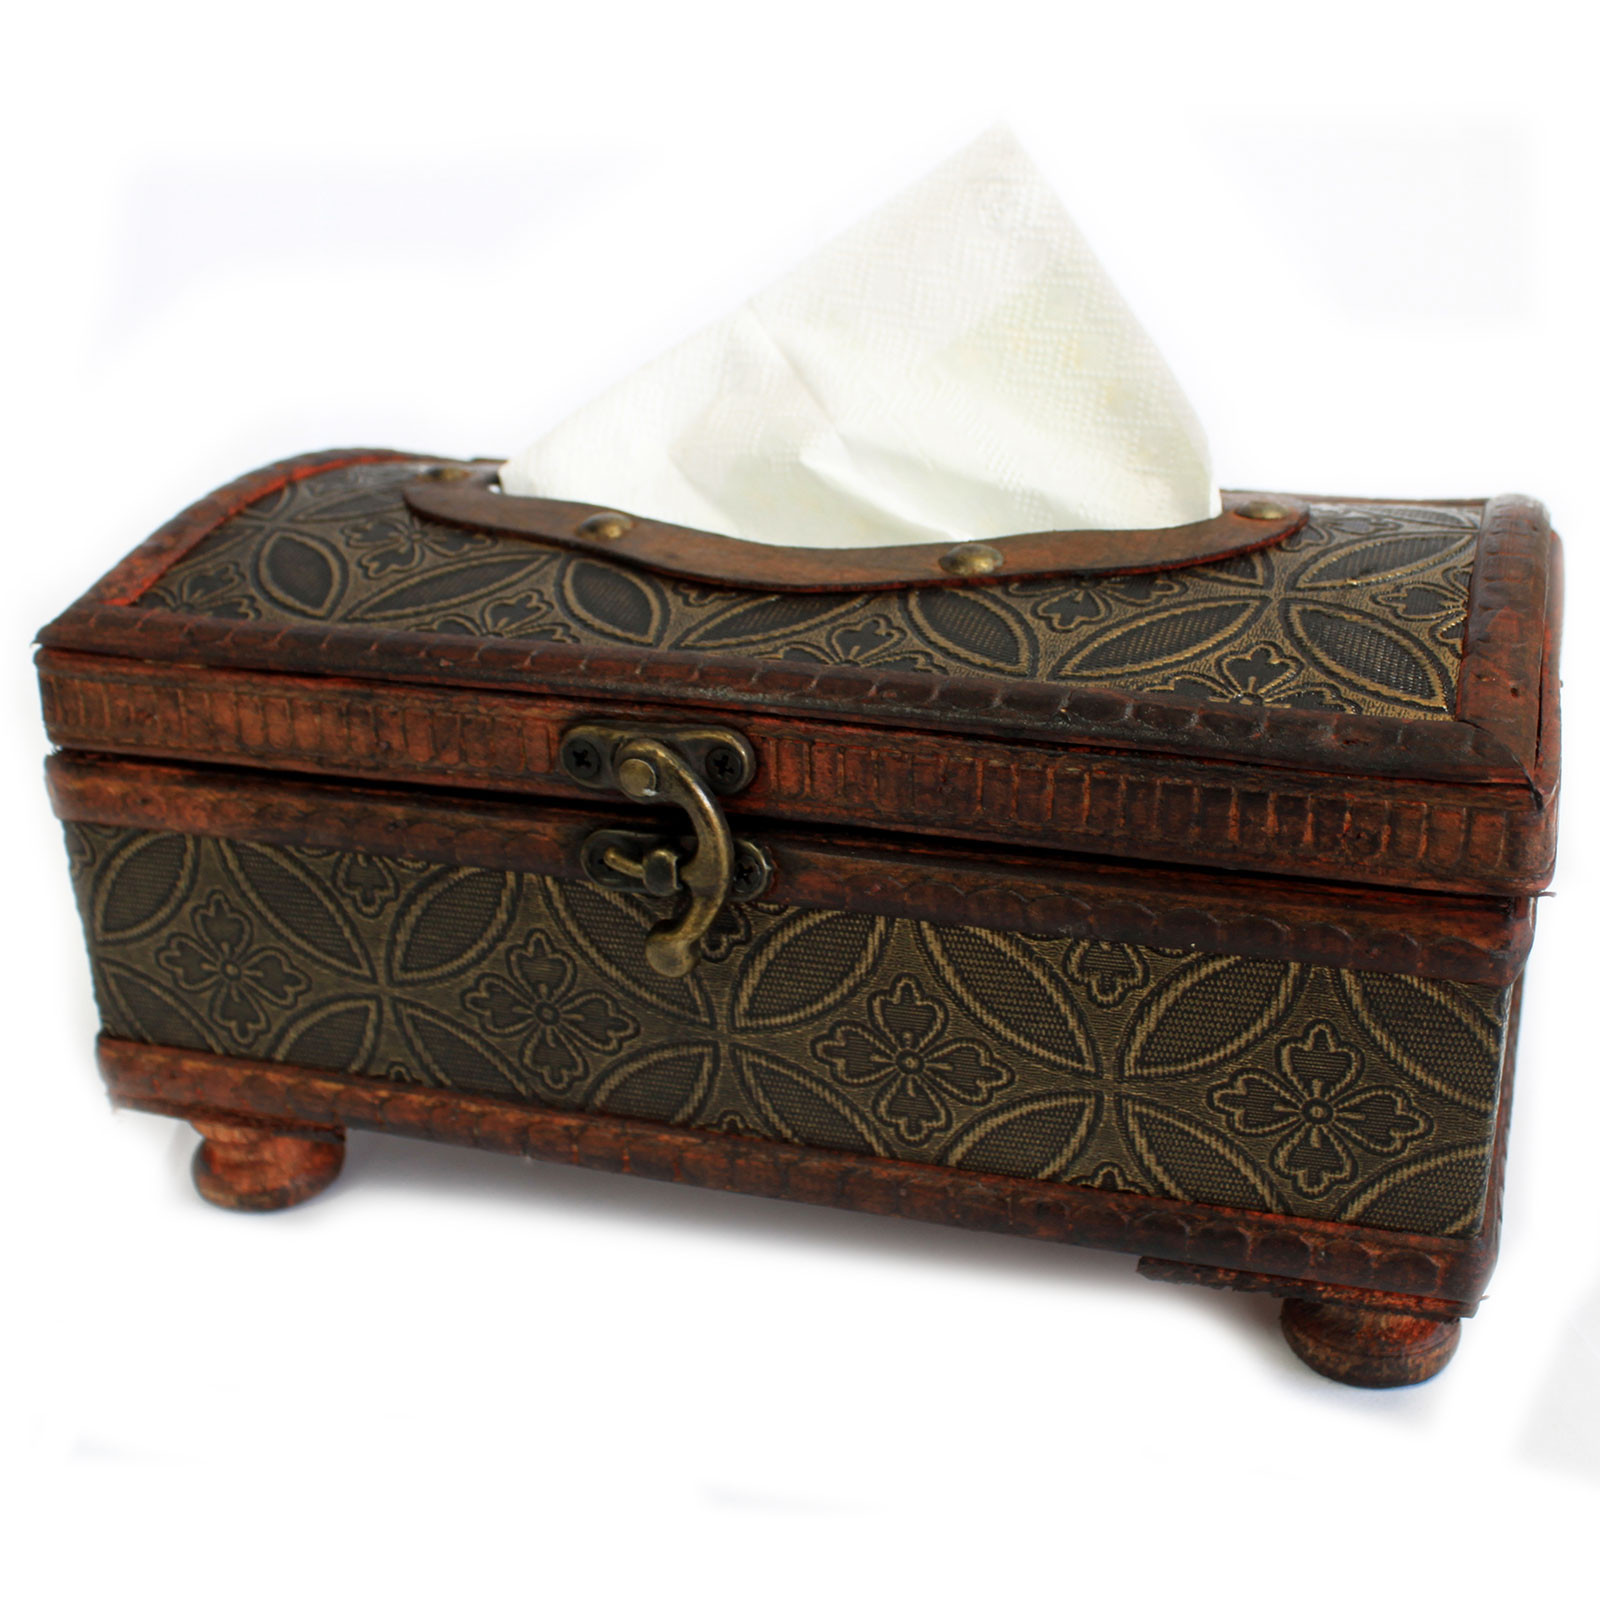 Classic Glamour style tissue box